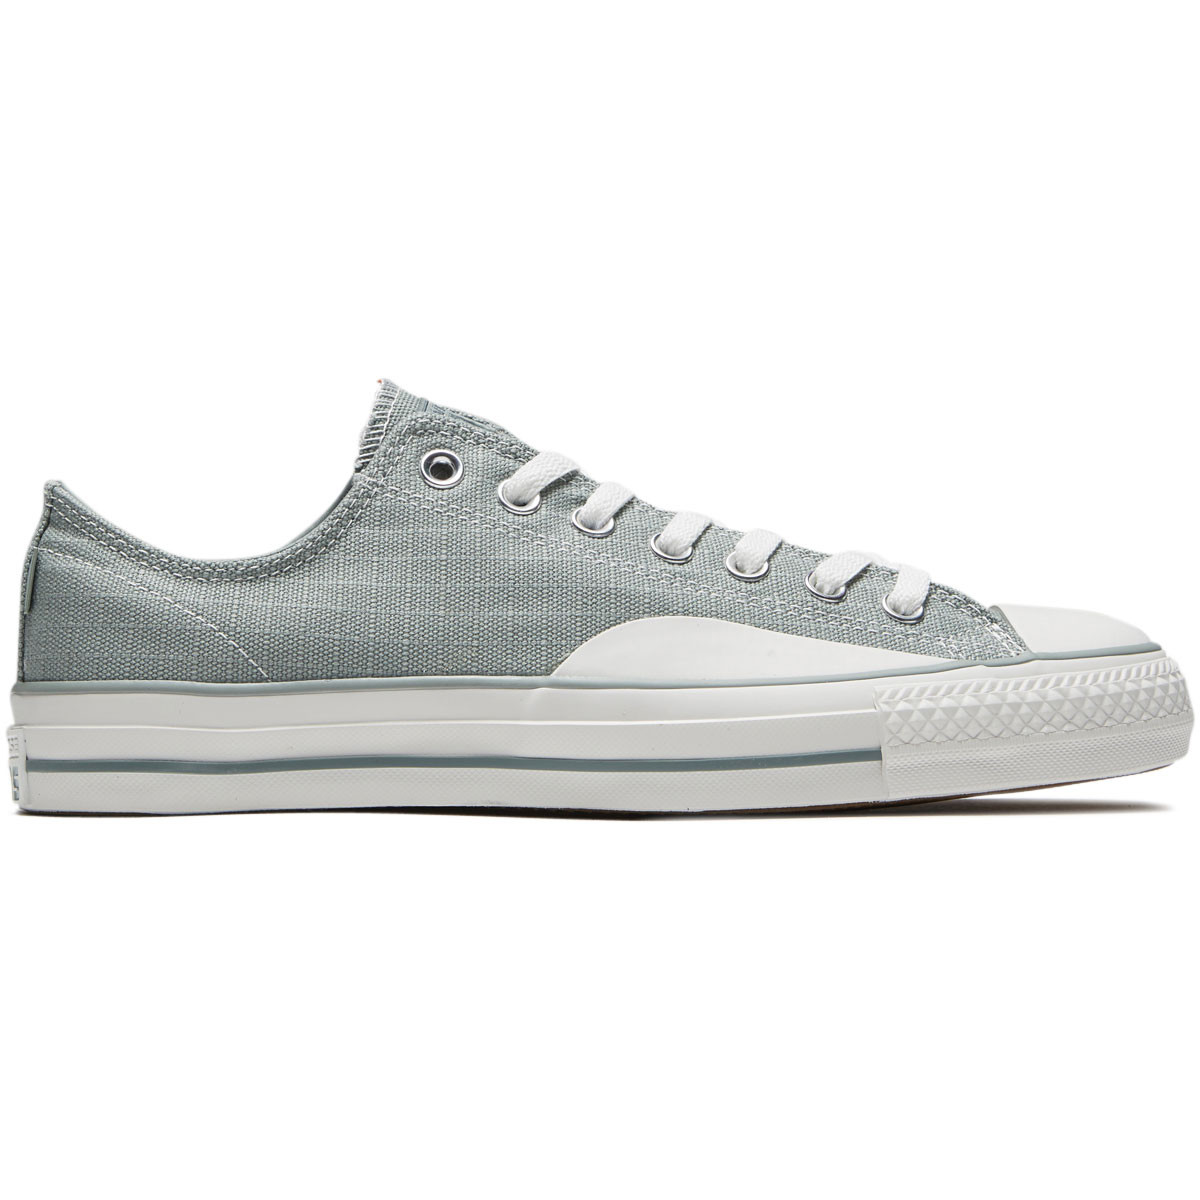 Converse Chuck Taylor All Star Pro Ripstop Ox Shoes